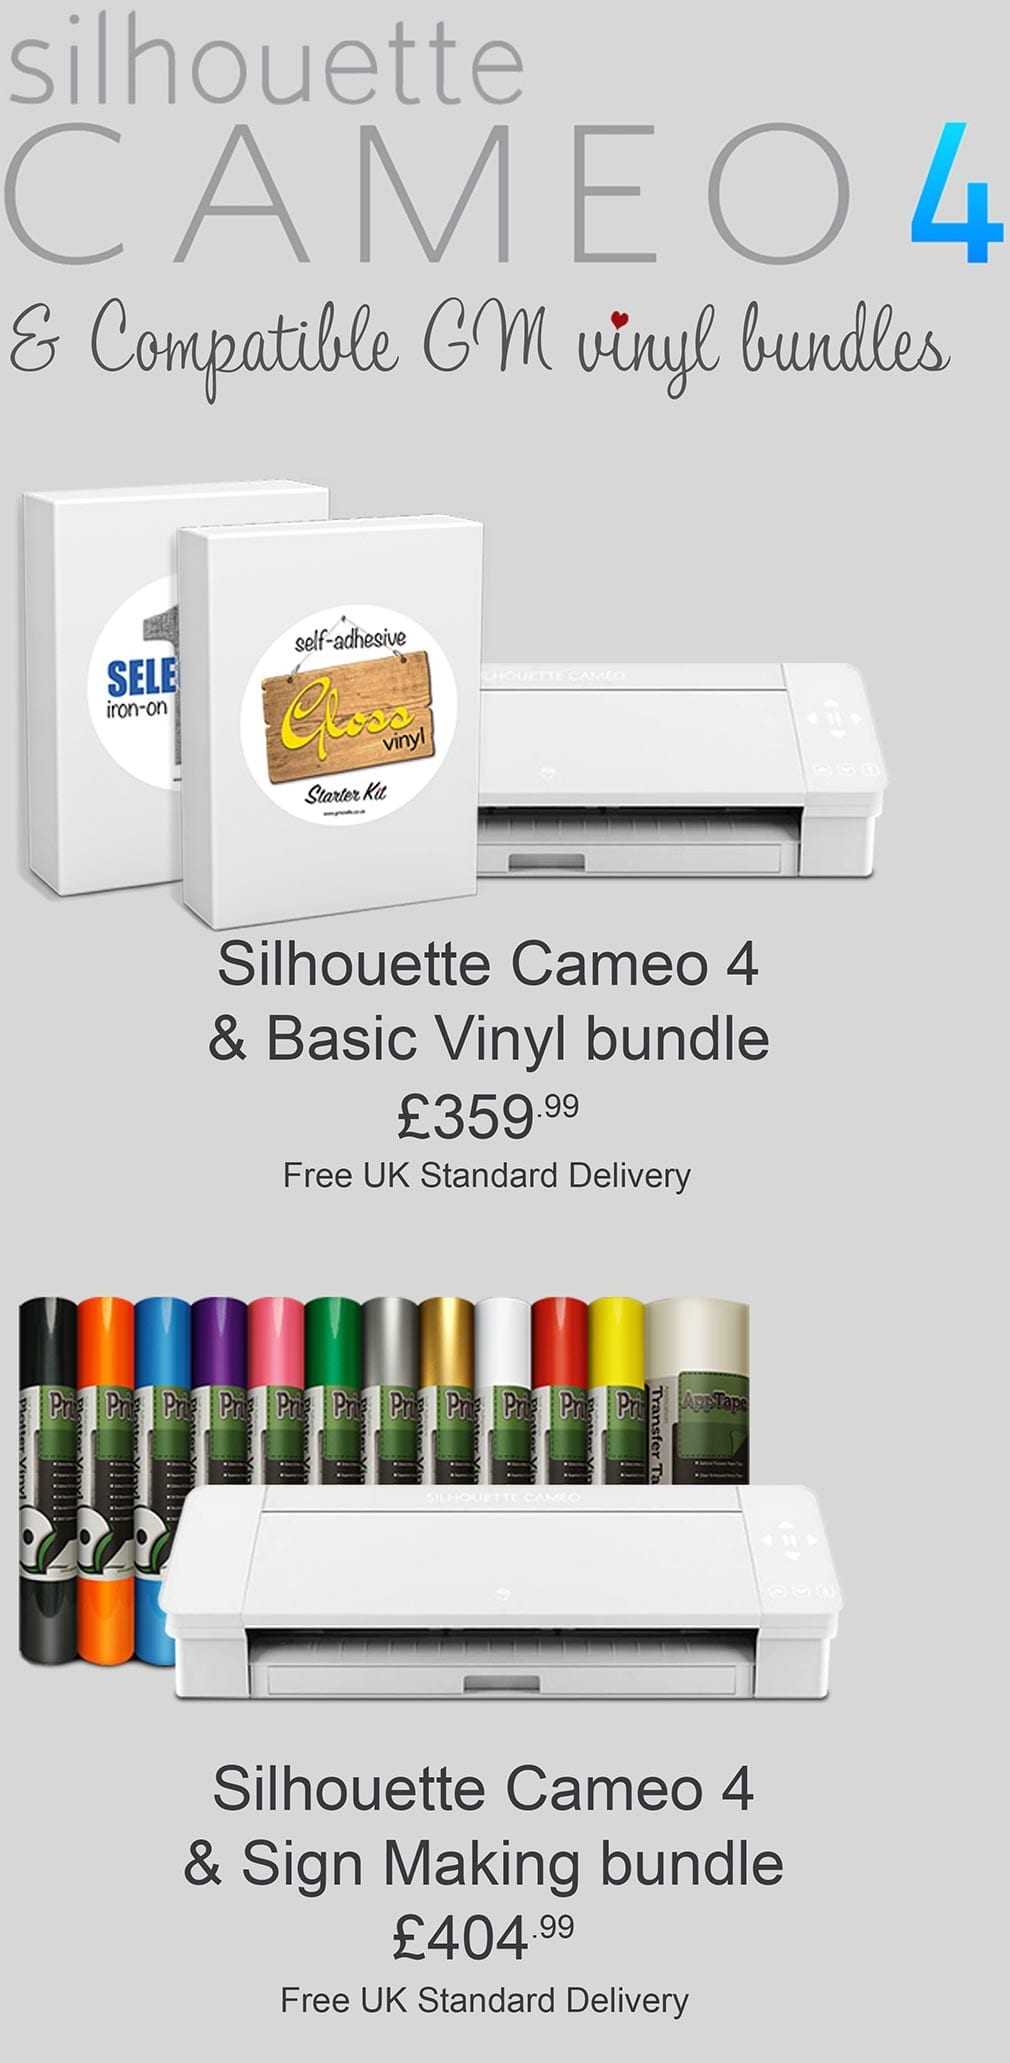 Mobile-Cameo-4-Vinyl-Bundles-From-GM-Crafts-1